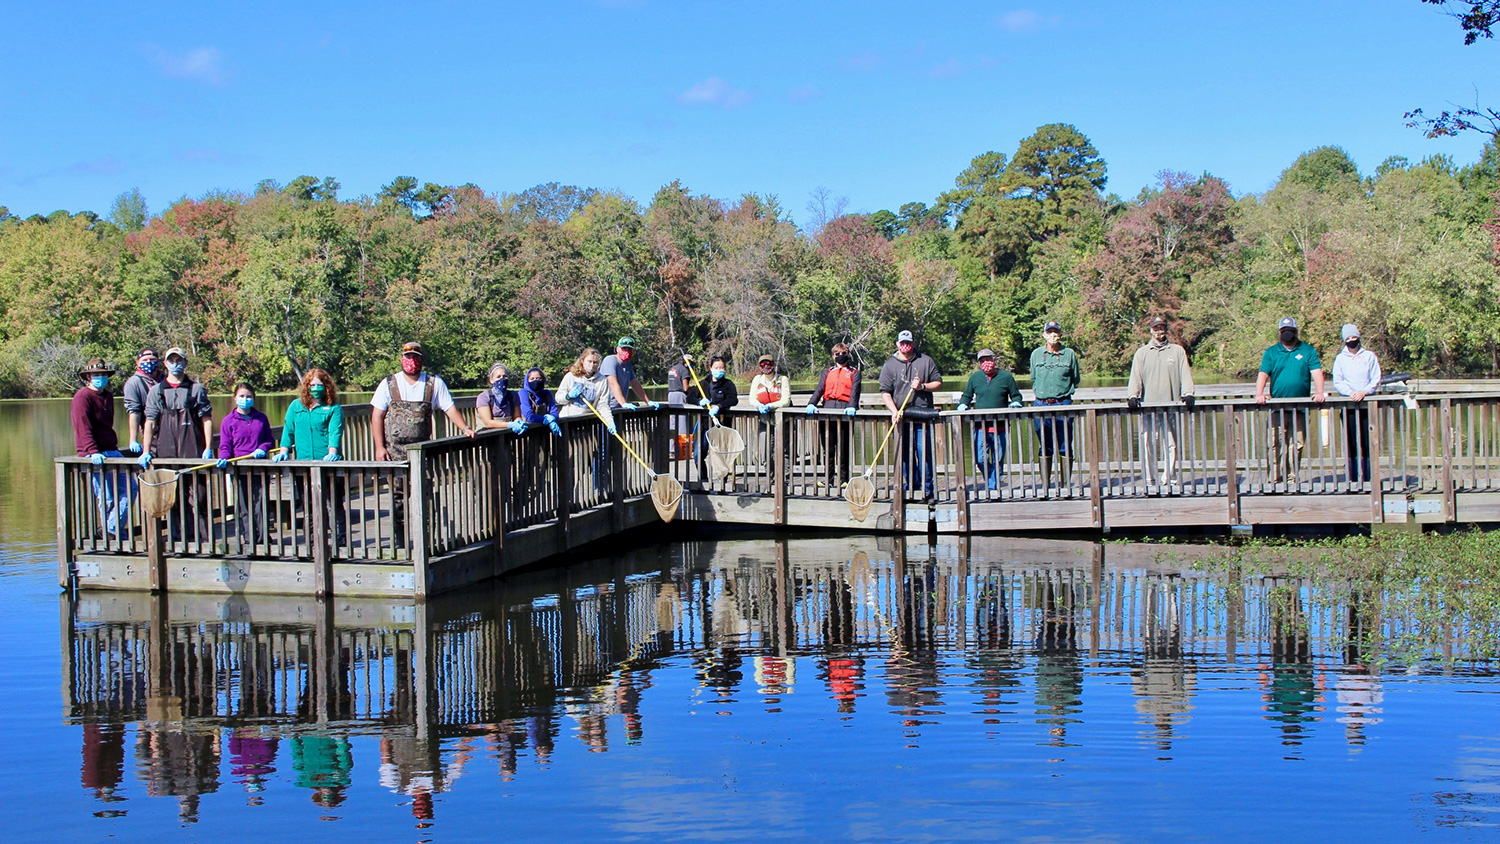 At Lake Raleigh, students stand on a dock after a day of collecting data about fish populations.